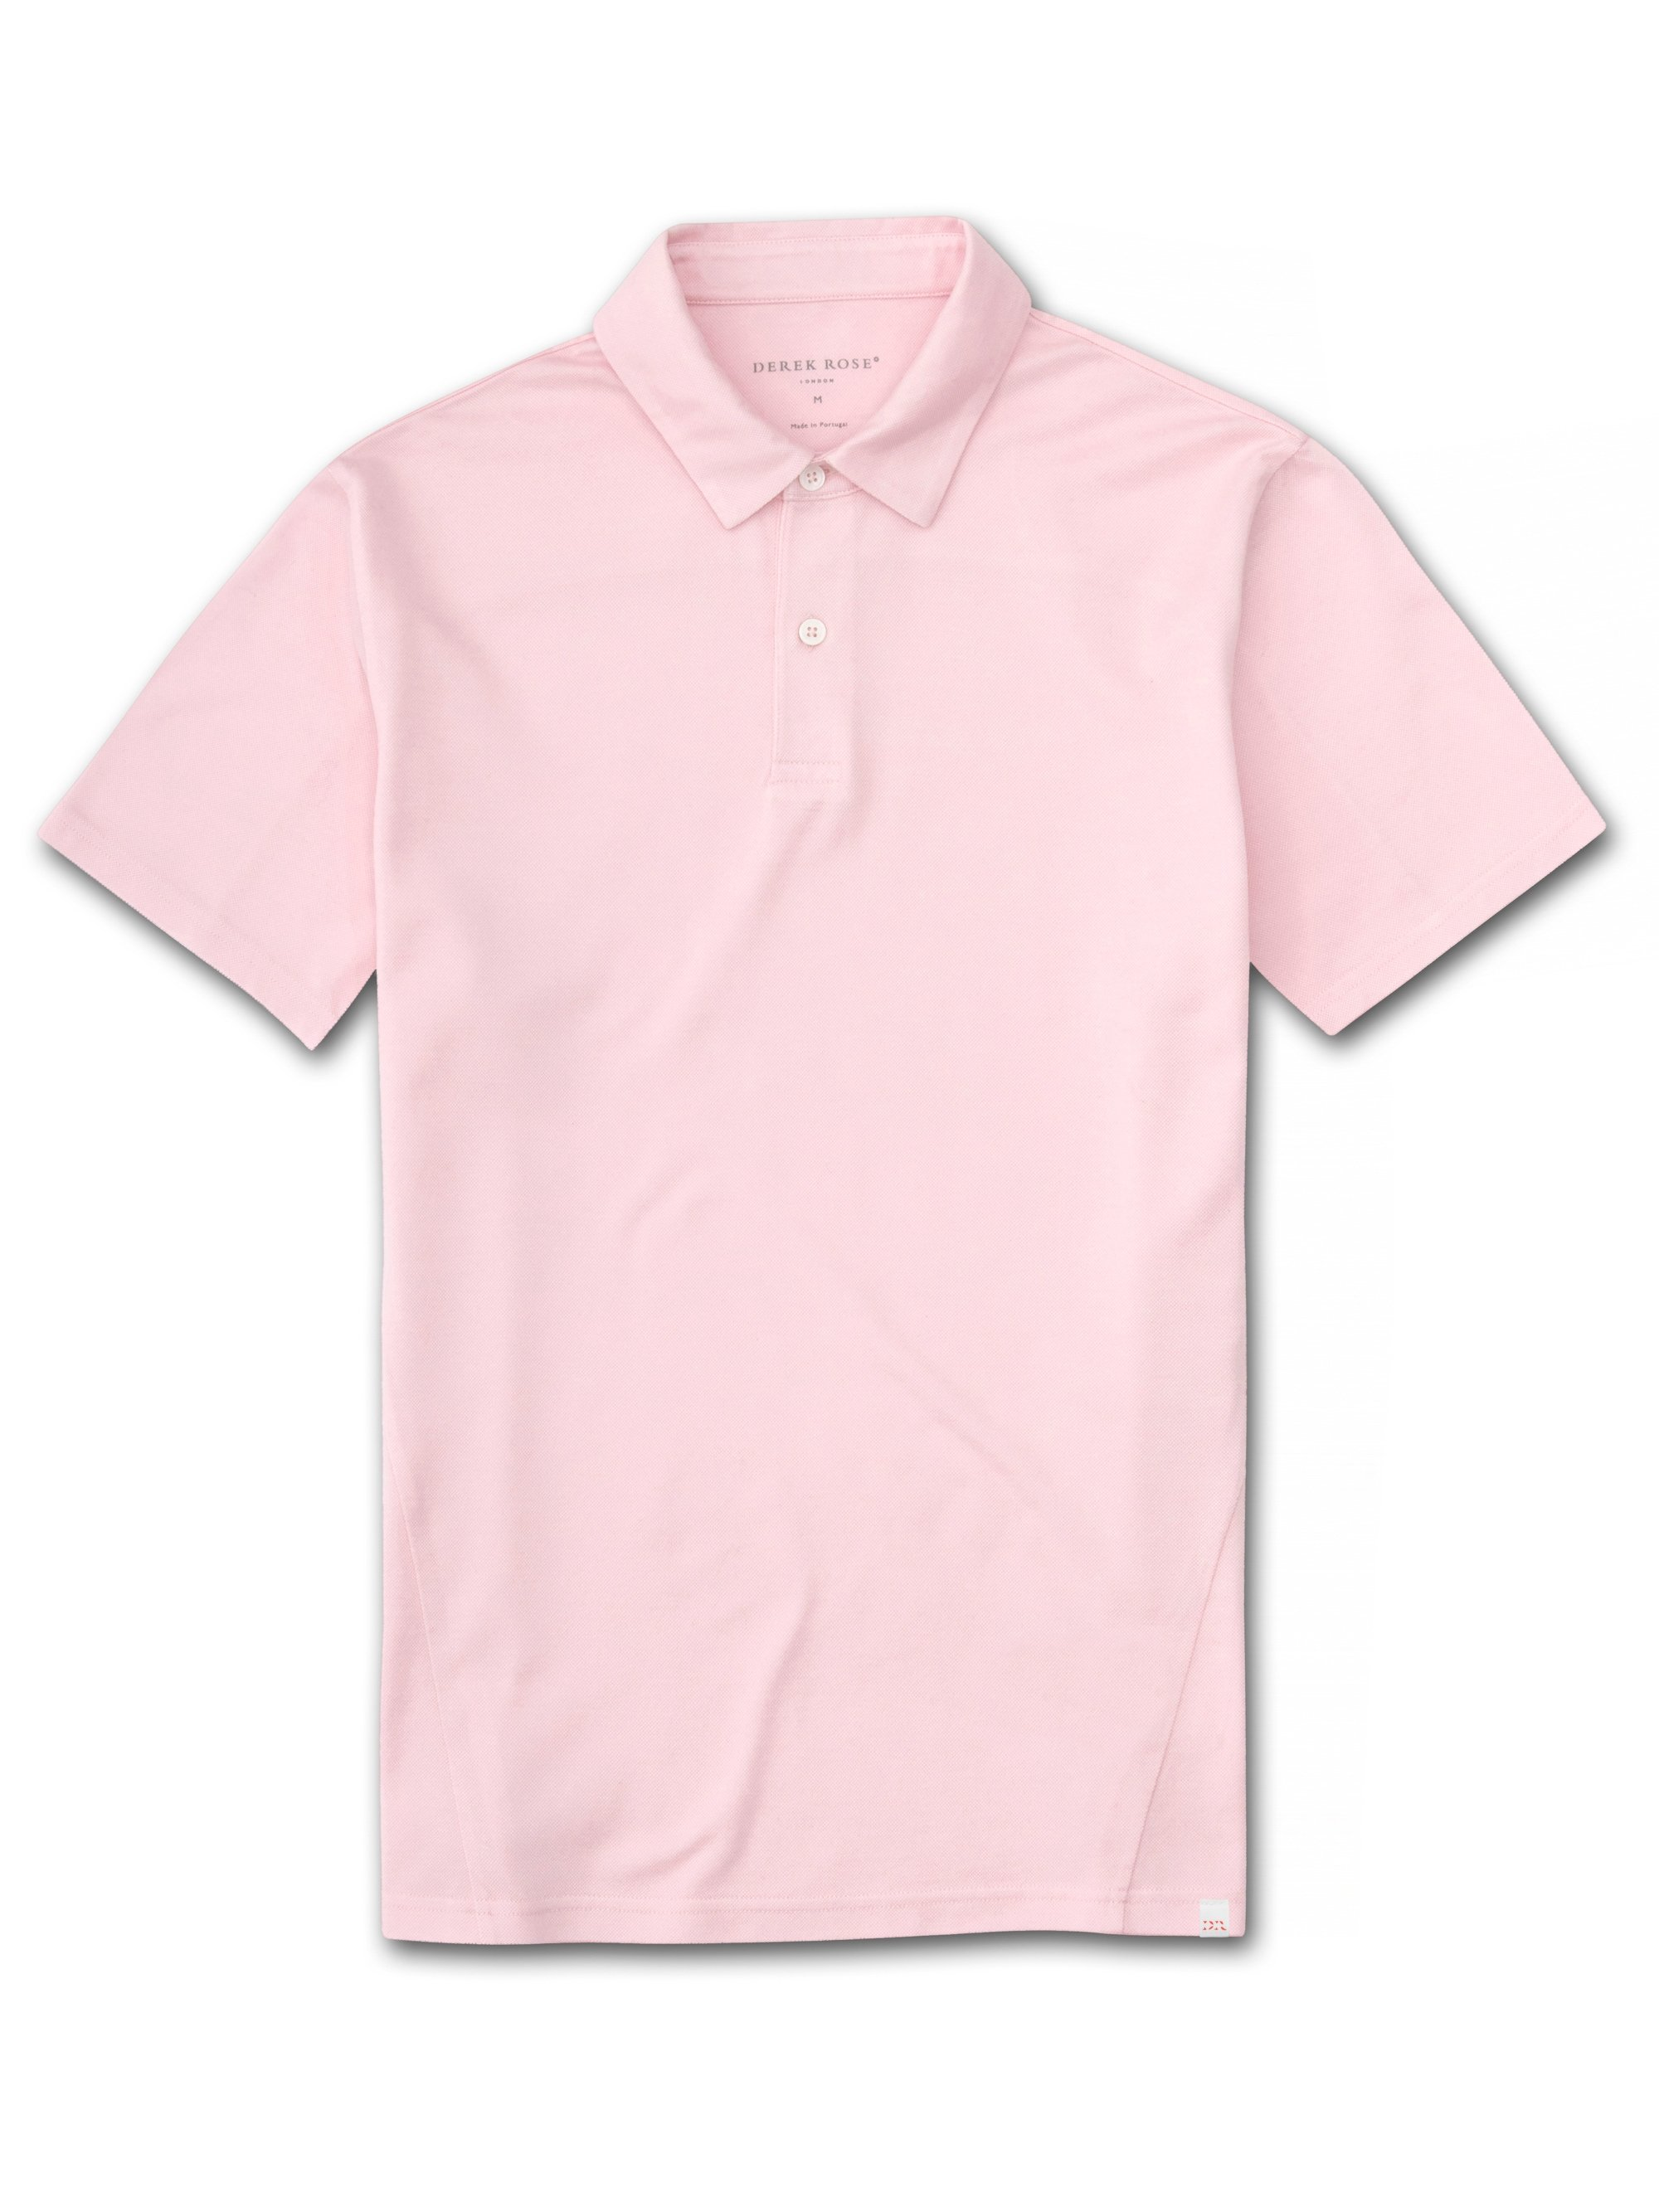 Men's Short Sleeve Polo Shirt Ramsay Pique Cotton Tencel Pink